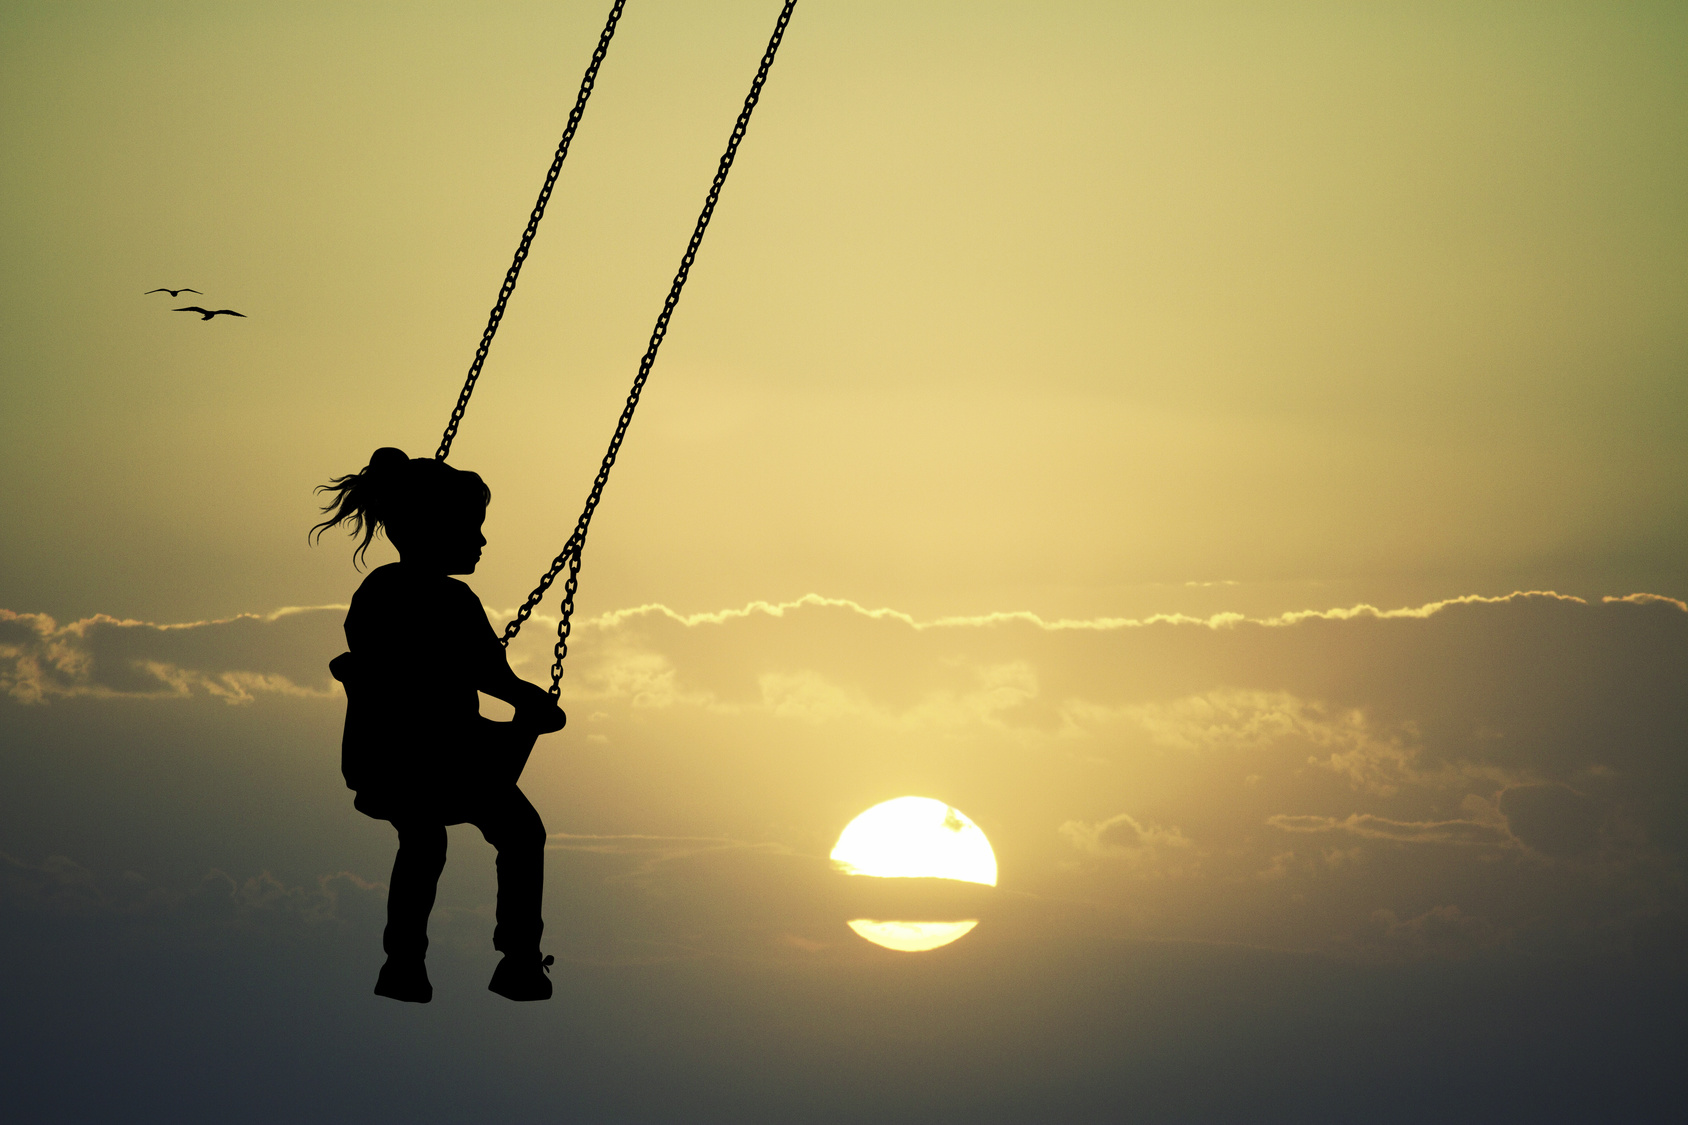 Inner Child- Girl on swing at sunset